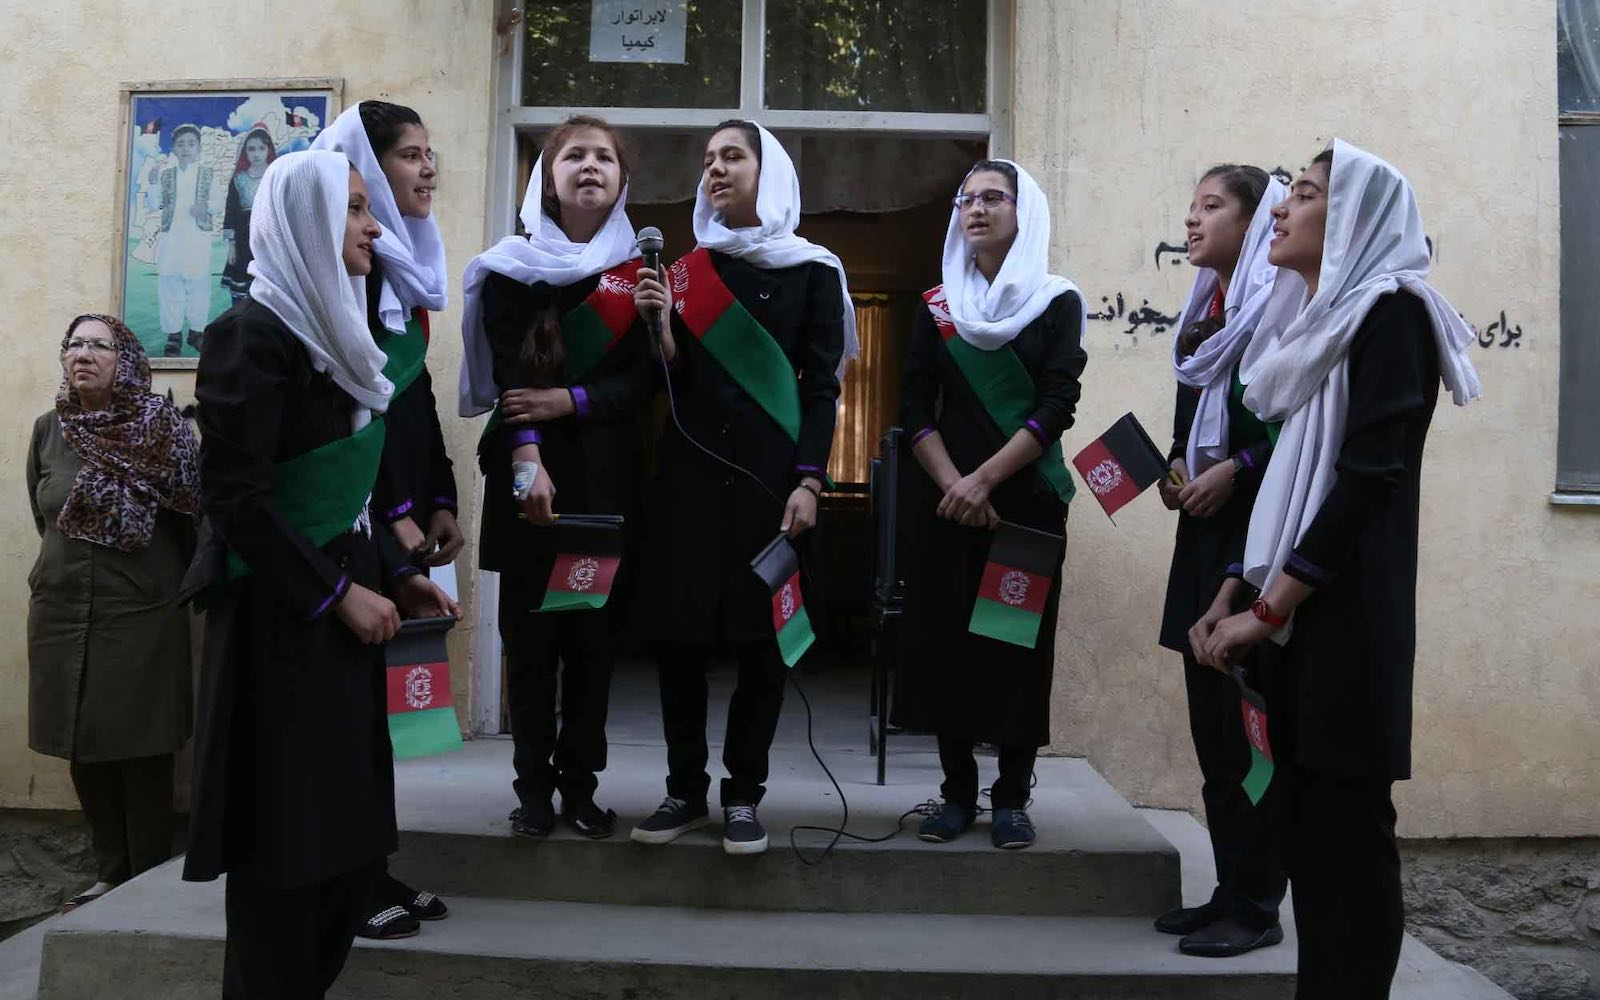 Afghan girl students sing the national anthem before classes at Surya High School in Kabul, September 2016 (Xinhua/Rahmat Alizadah via Getty Images)